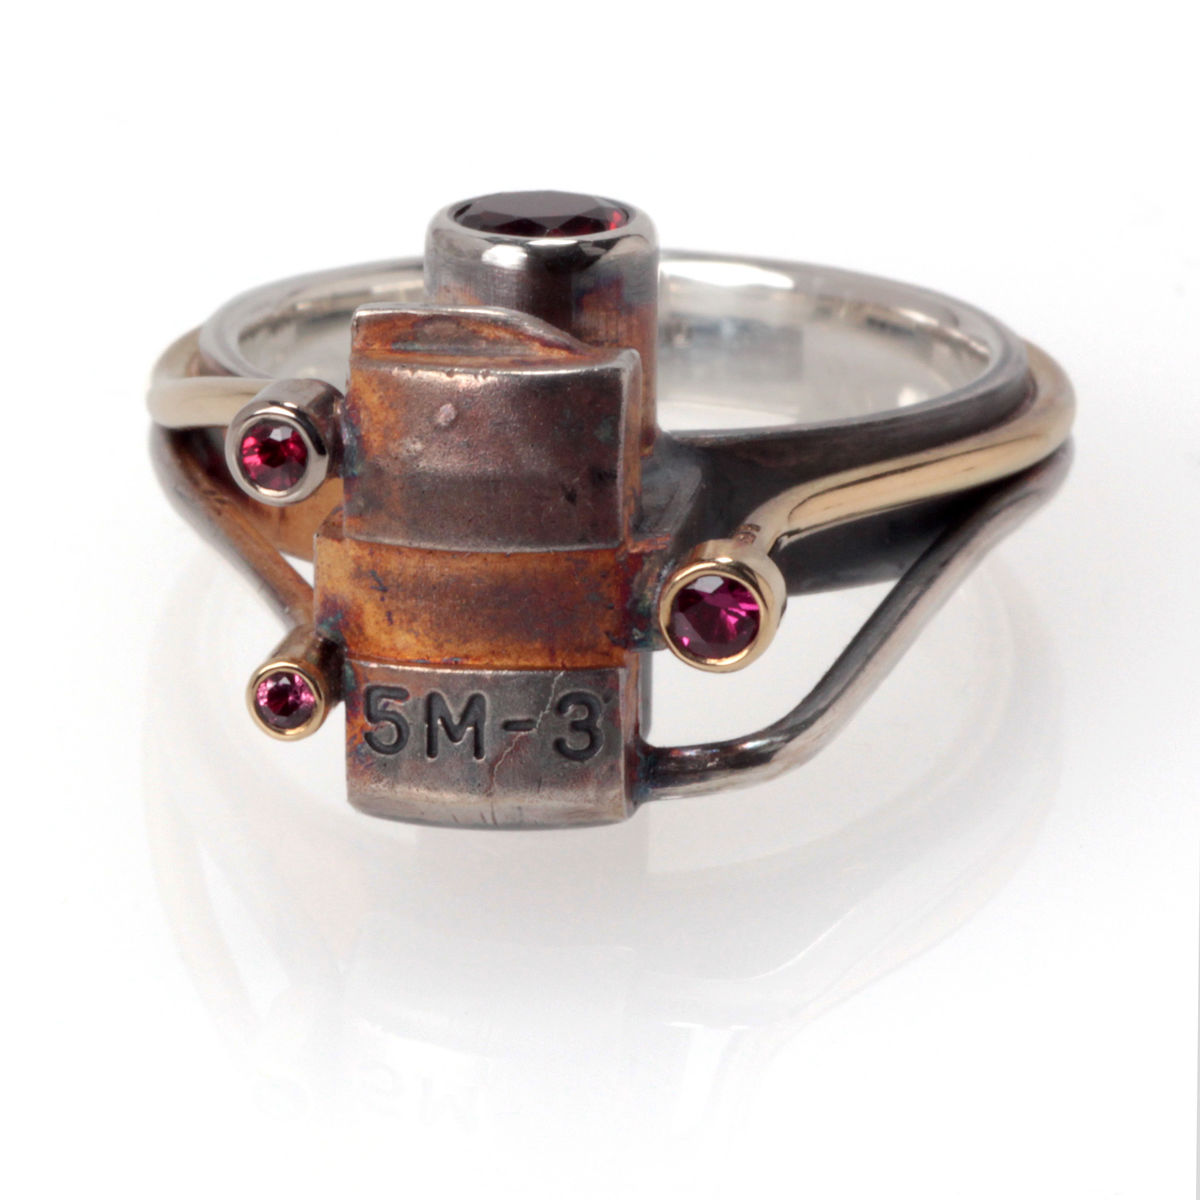 5M-3 Ring - product image